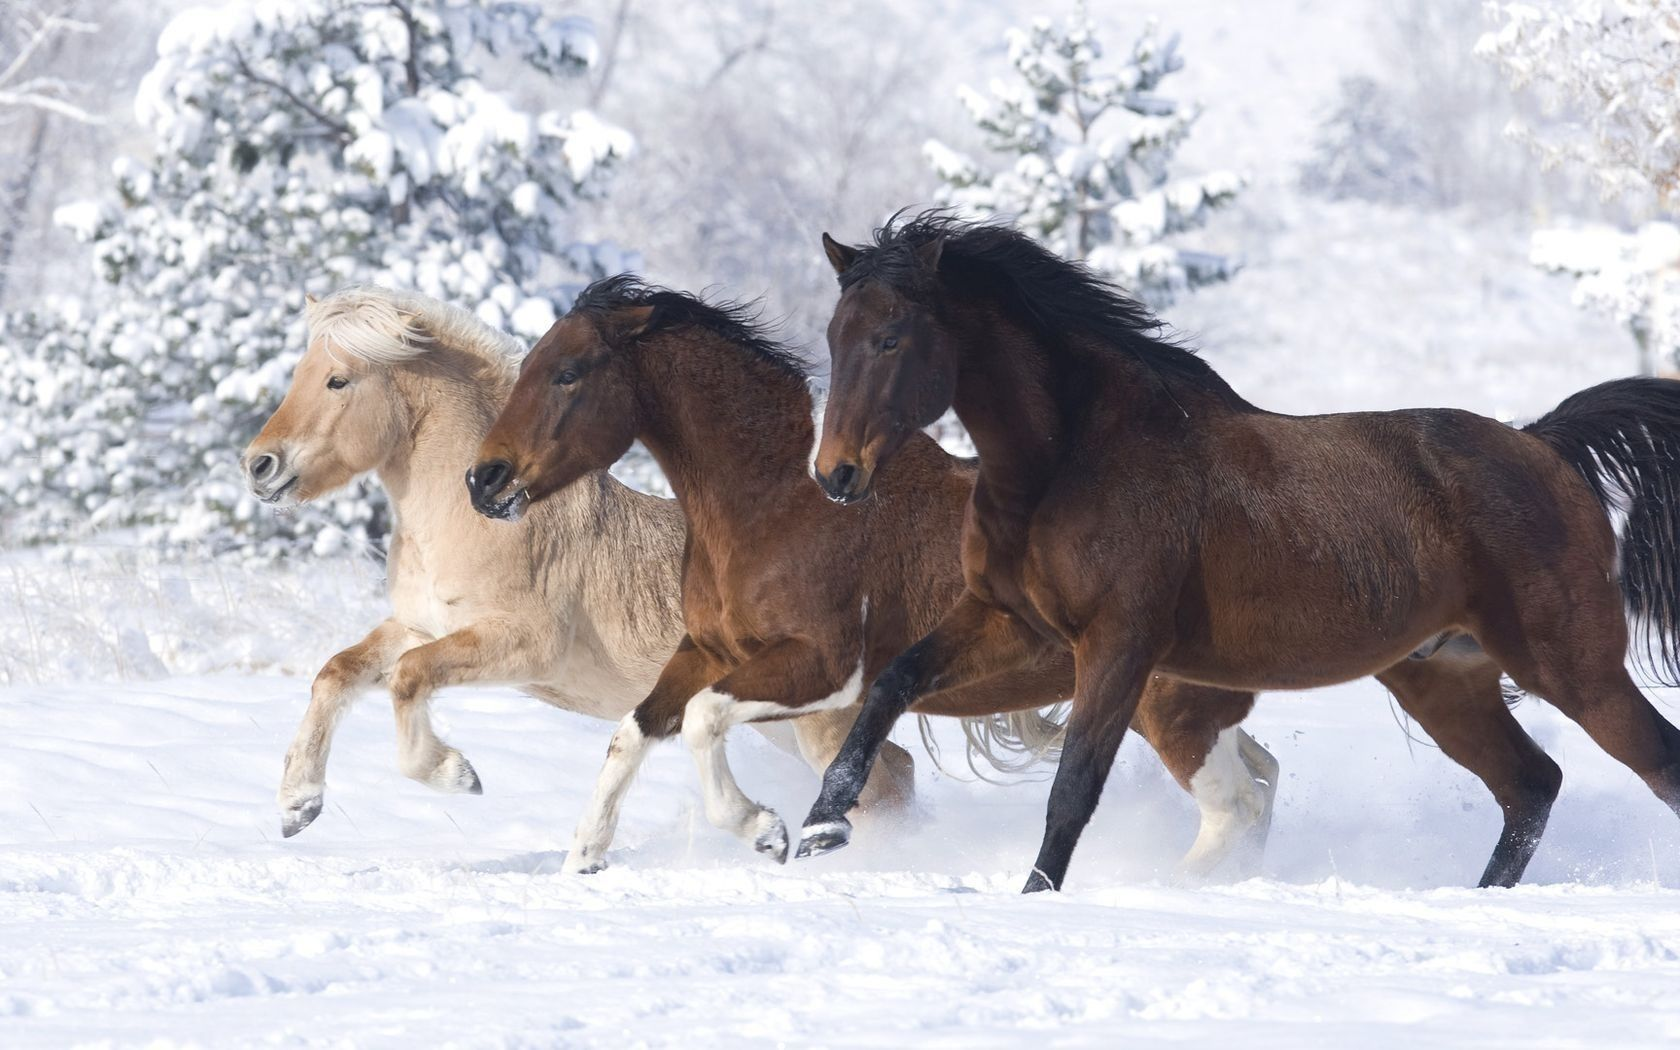 Simple Wallpaper Horse Winter - 0a04cc42a8975ba6668a309e63d6b46f  Pictures_93628.jpg